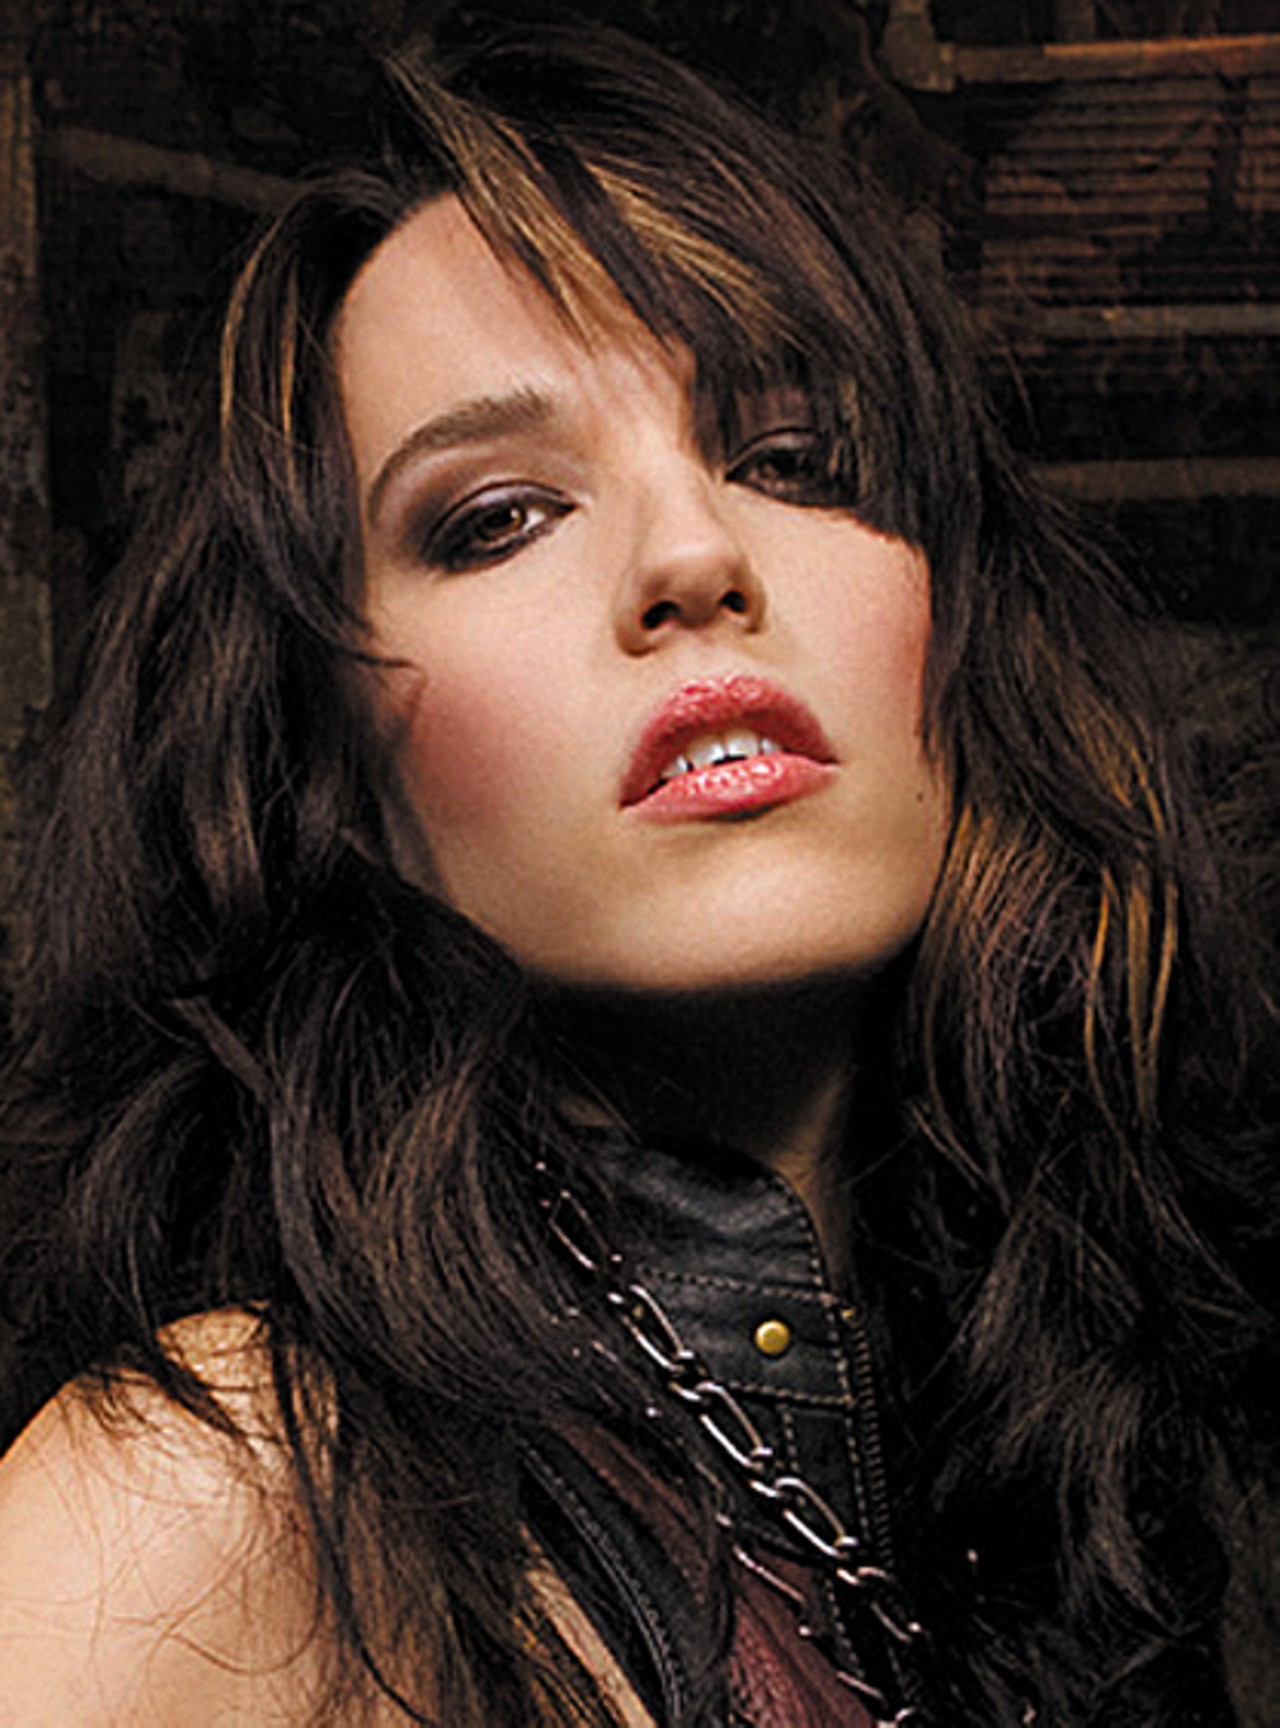 Soundcheck Lzzy Hale Music Feature Cleveland Scene